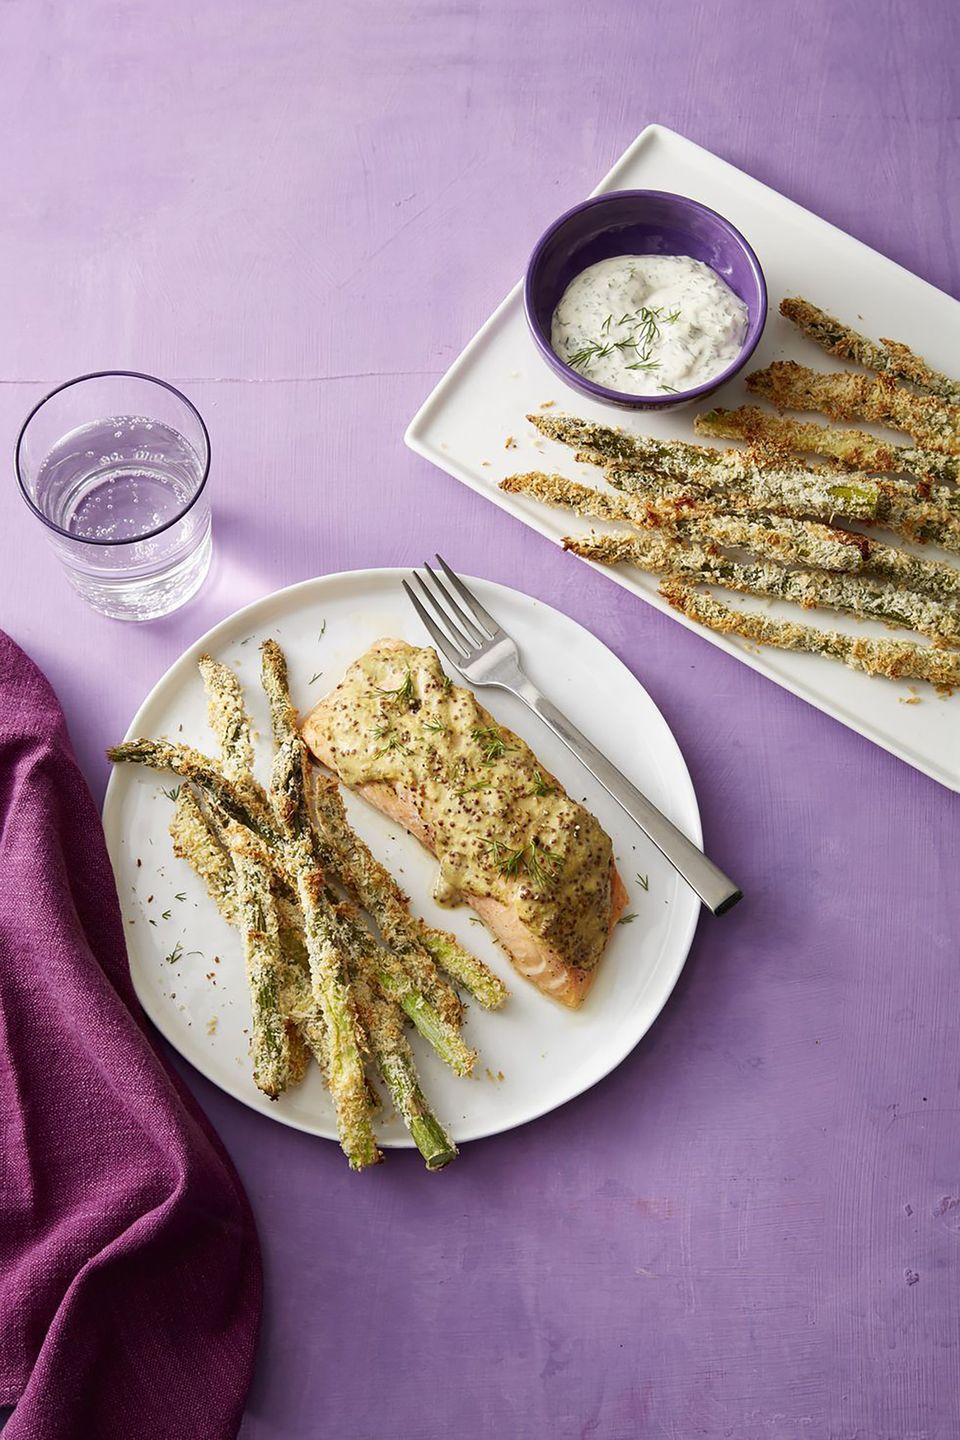 "<p>This salmon gets a saucy kick from a mustard-dill topping. Pair with crispy asparagus fries for an irresistible side. </p><p><strong>Get the recipe at <a href=""https://www.womansday.com/food-recipes/a19156229/mustard-dill-salmon-with-crispy-asparagus-fries-recipe/"" rel=""nofollow noopener"" target=""_blank"" data-ylk=""slk:Woman's Day"" class=""link rapid-noclick-resp"">Woman's Day</a>.</strong></p>"